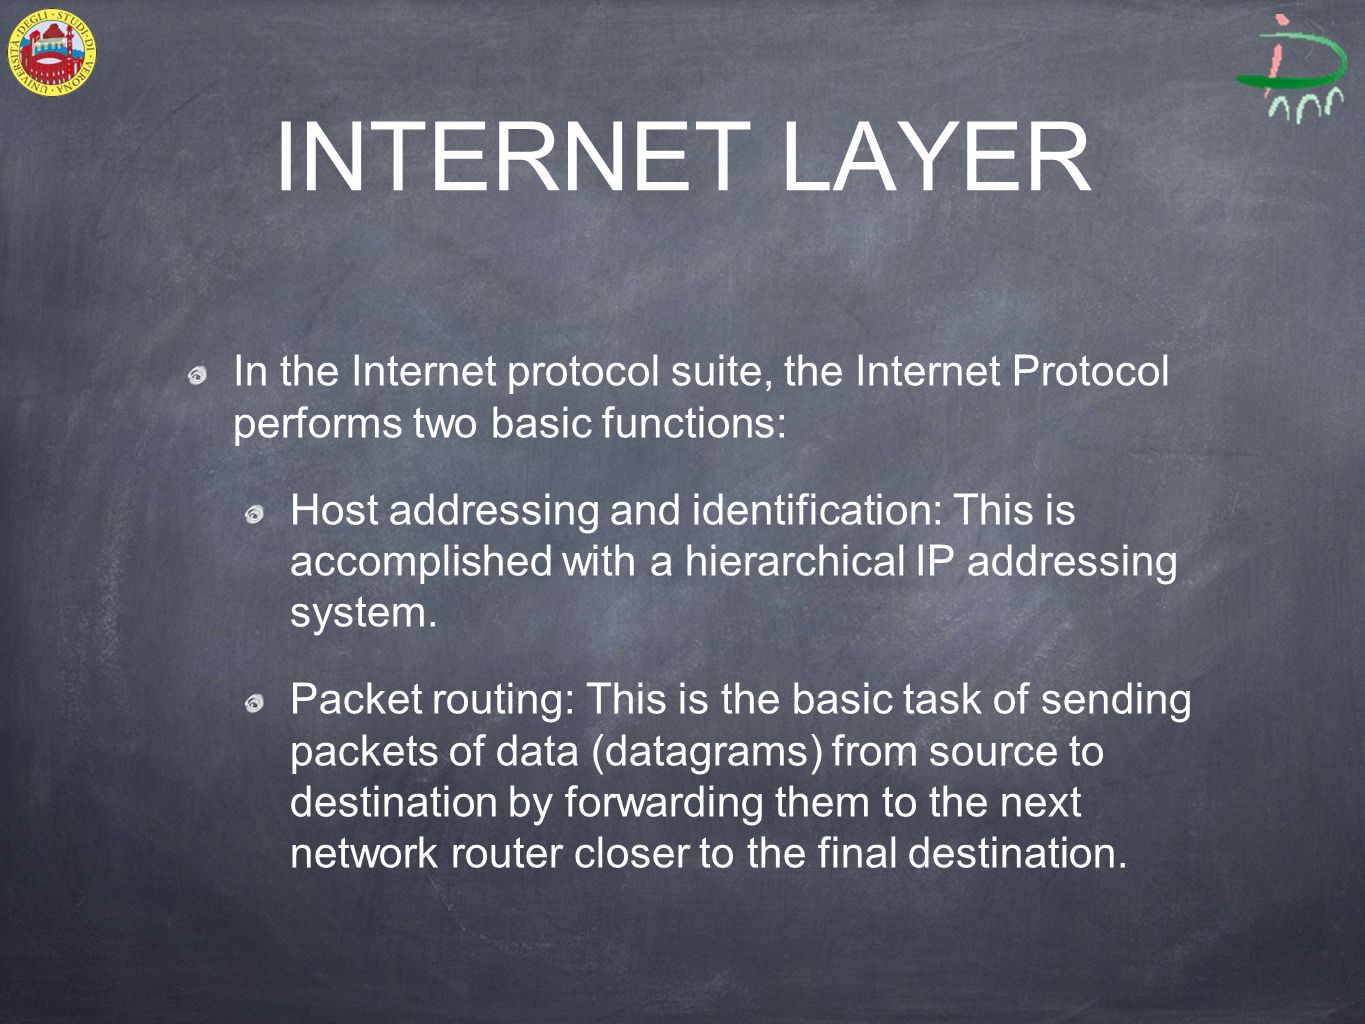 INTERNET LAYER In the Internet protocol suite, the Internet Protocol performs two basic functions: Host addressing and identification: This is accompl